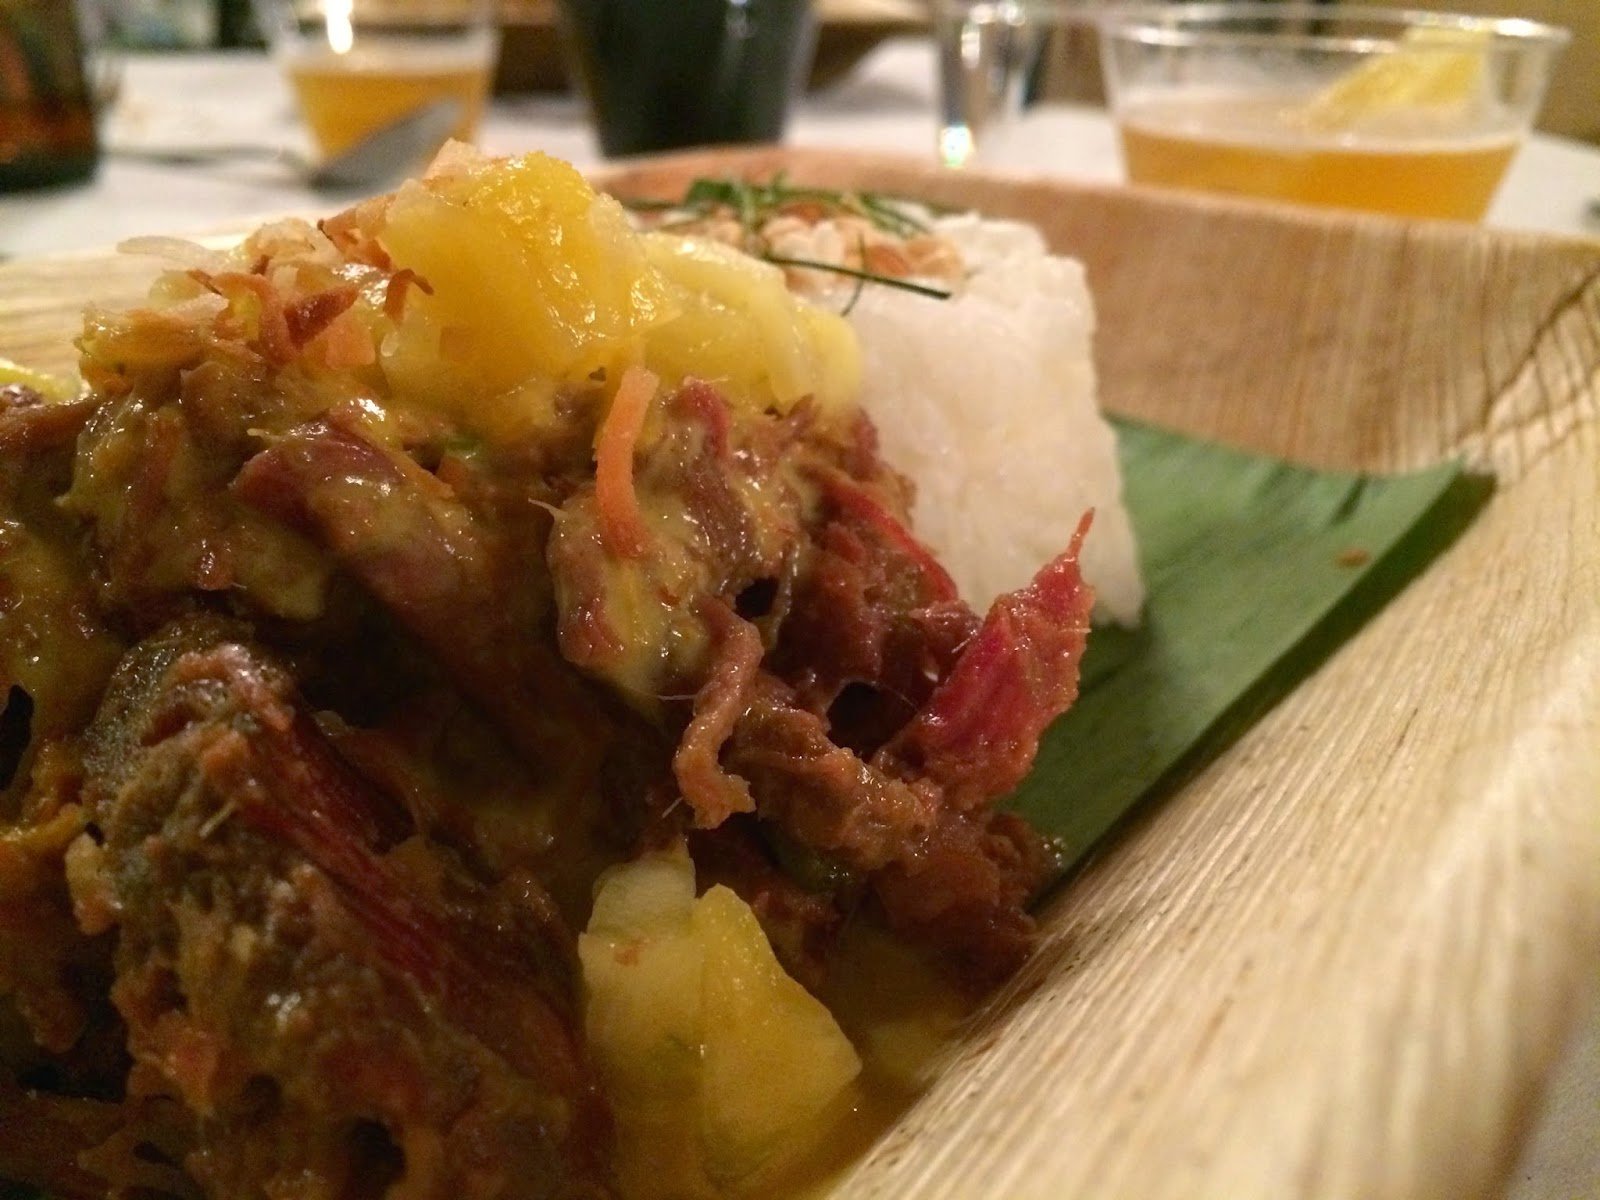 Fourth Course: Goat Rendang with Coconut Rice, Pickled Pineapple, and Kaffir Lime